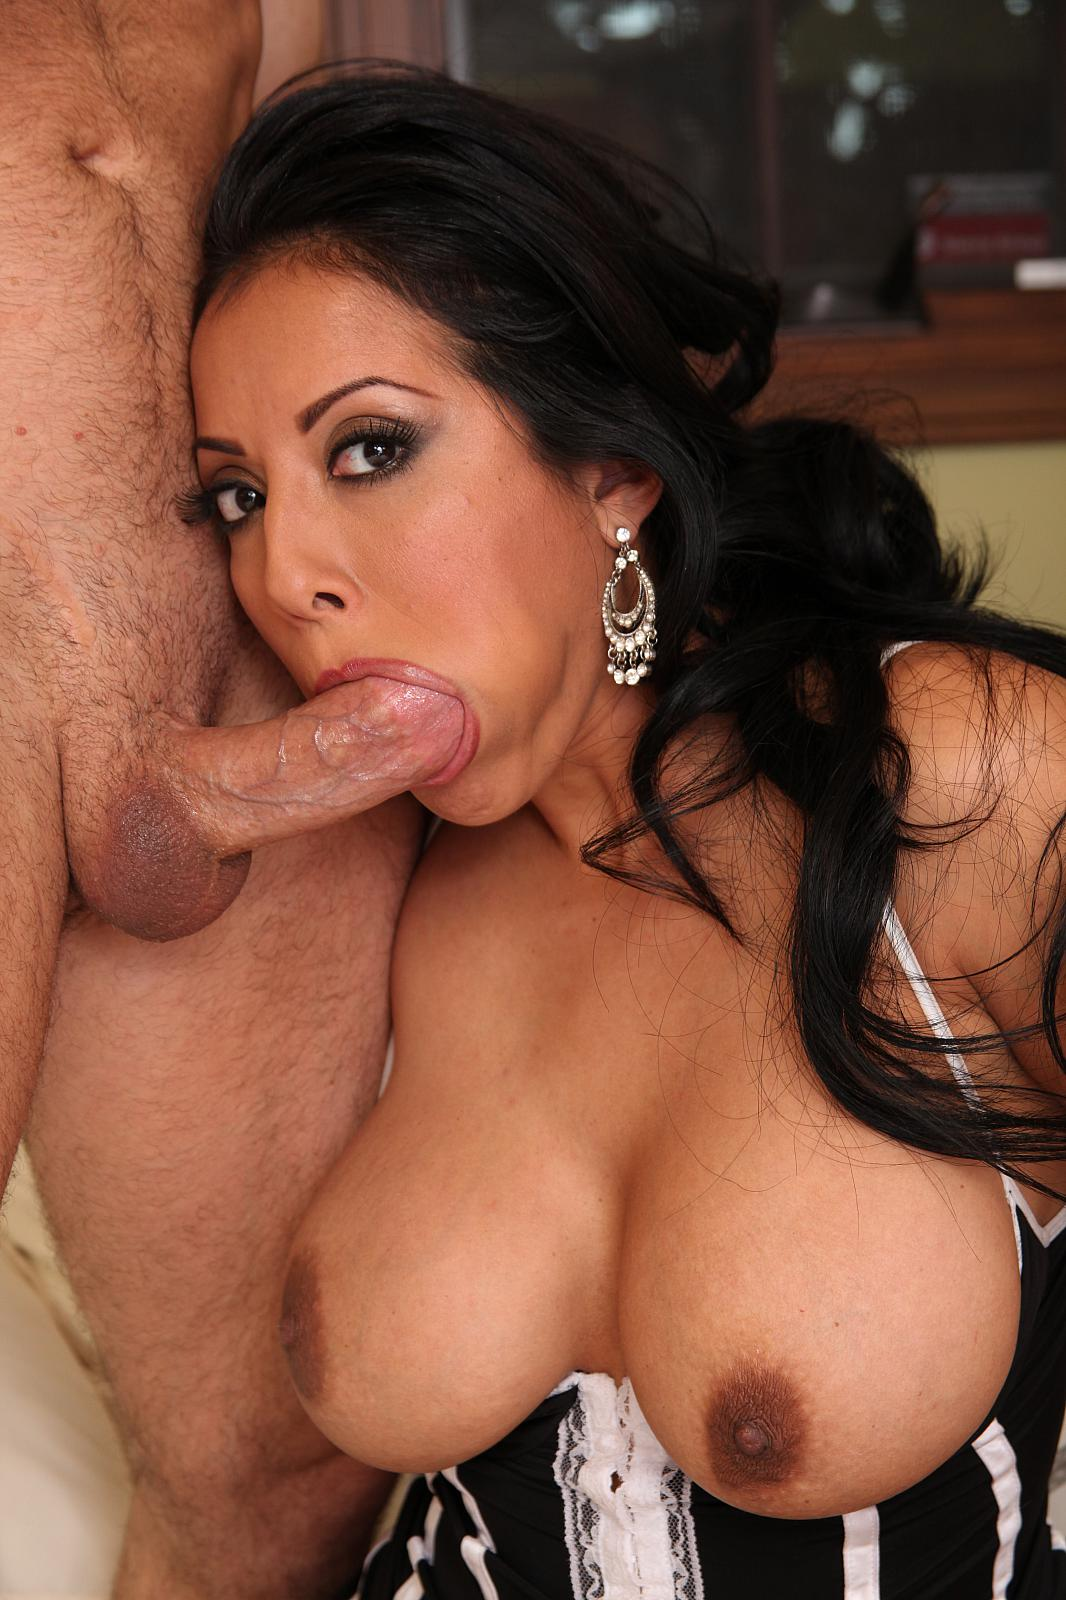 Remarkable, very Amateur mature latina porn